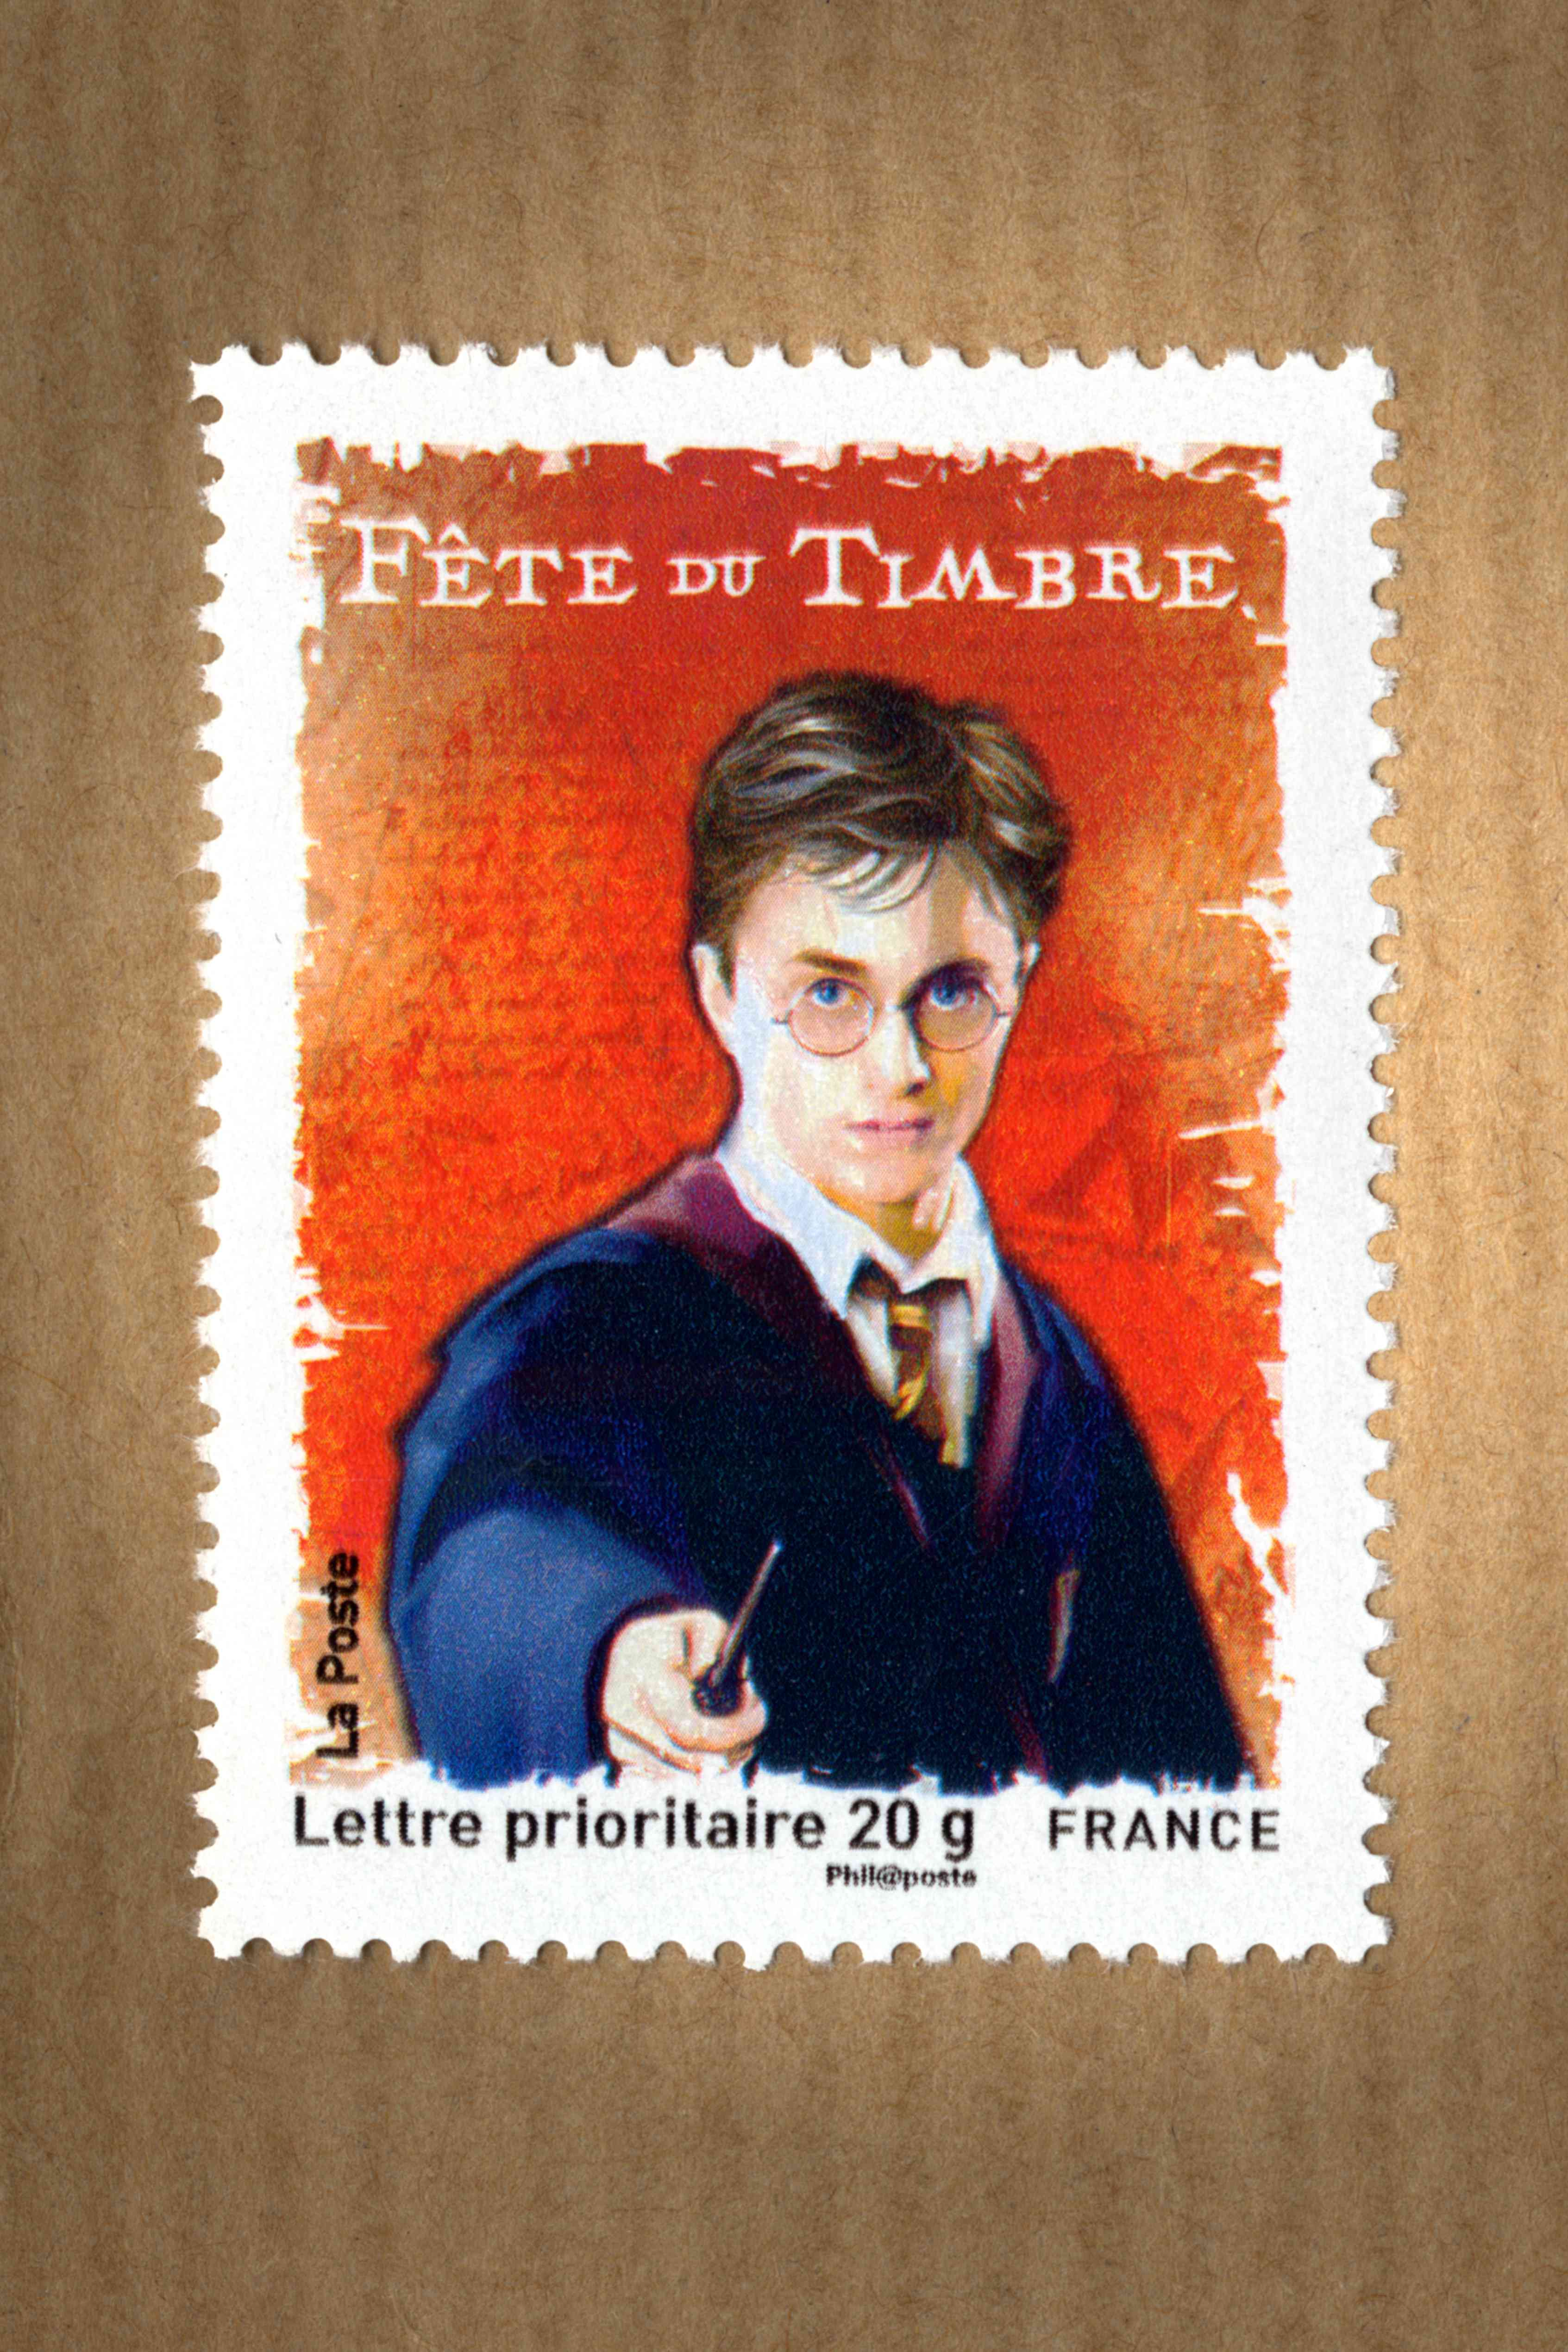 French Harry Potter Stamp